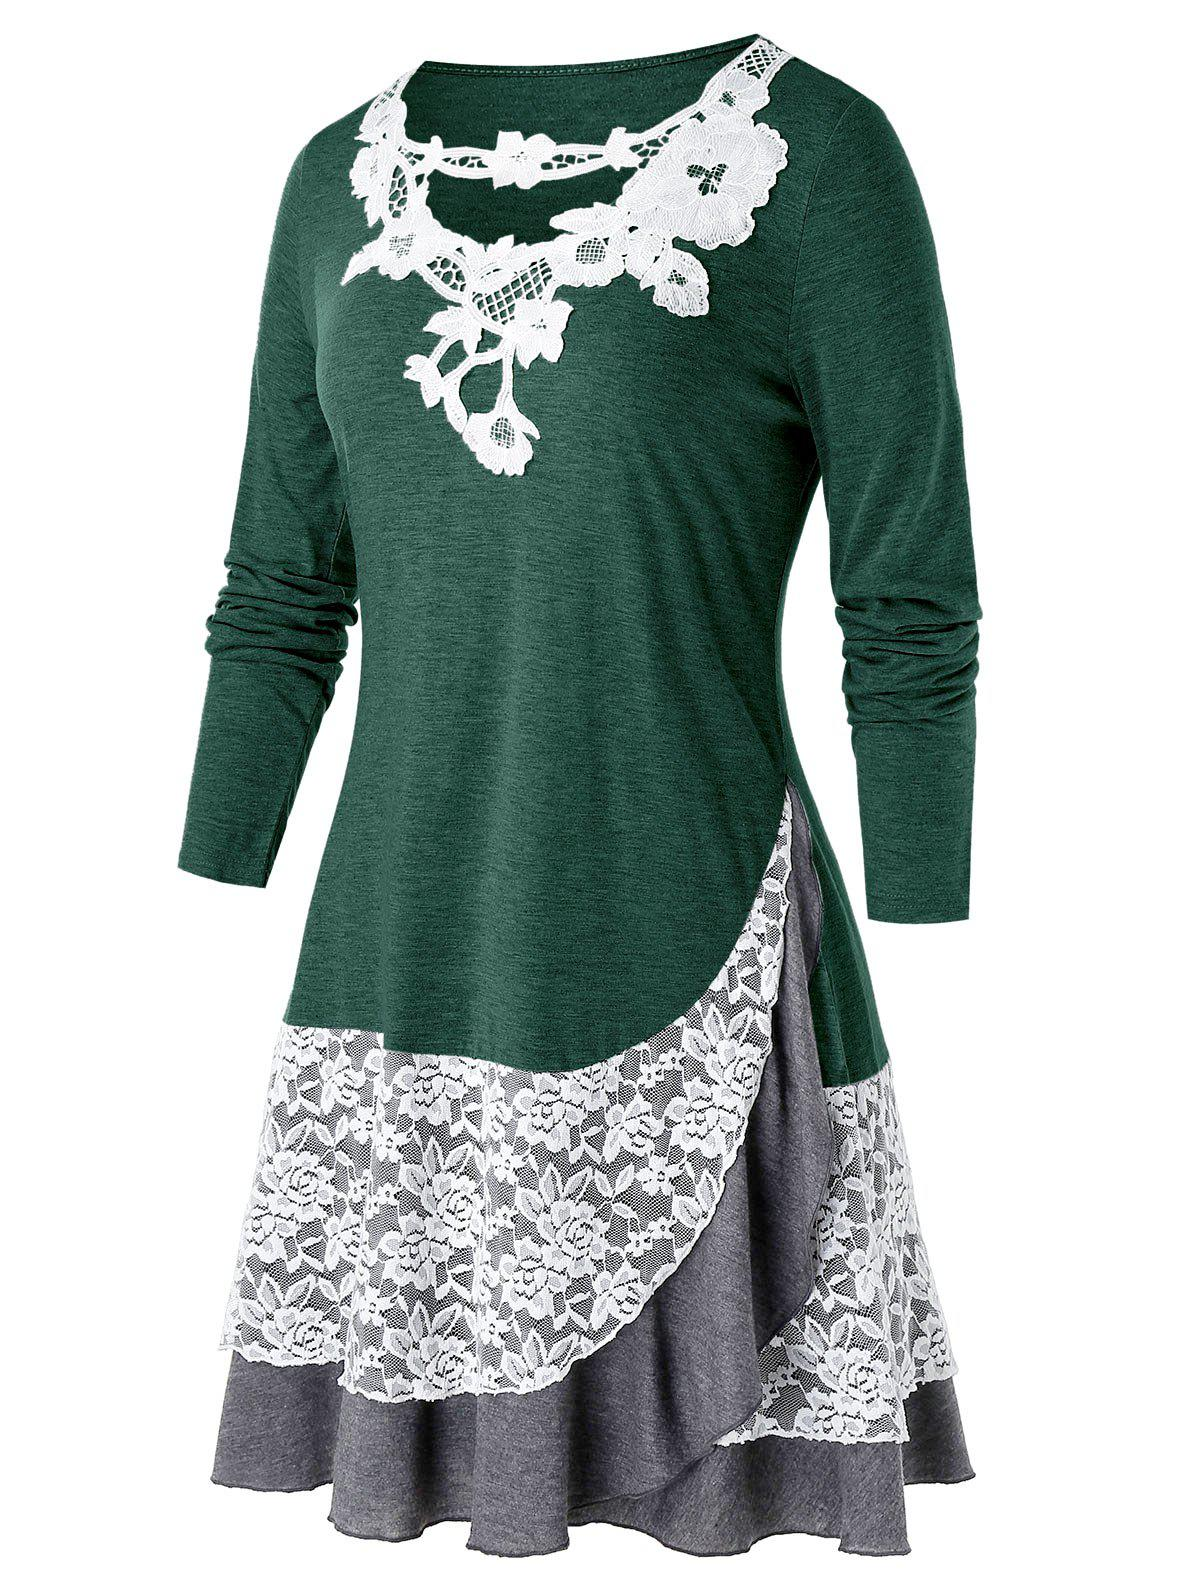 Plus Size Lace Panel Applique Long Sleeve Overlap Tee - DEEP GREEN 5X